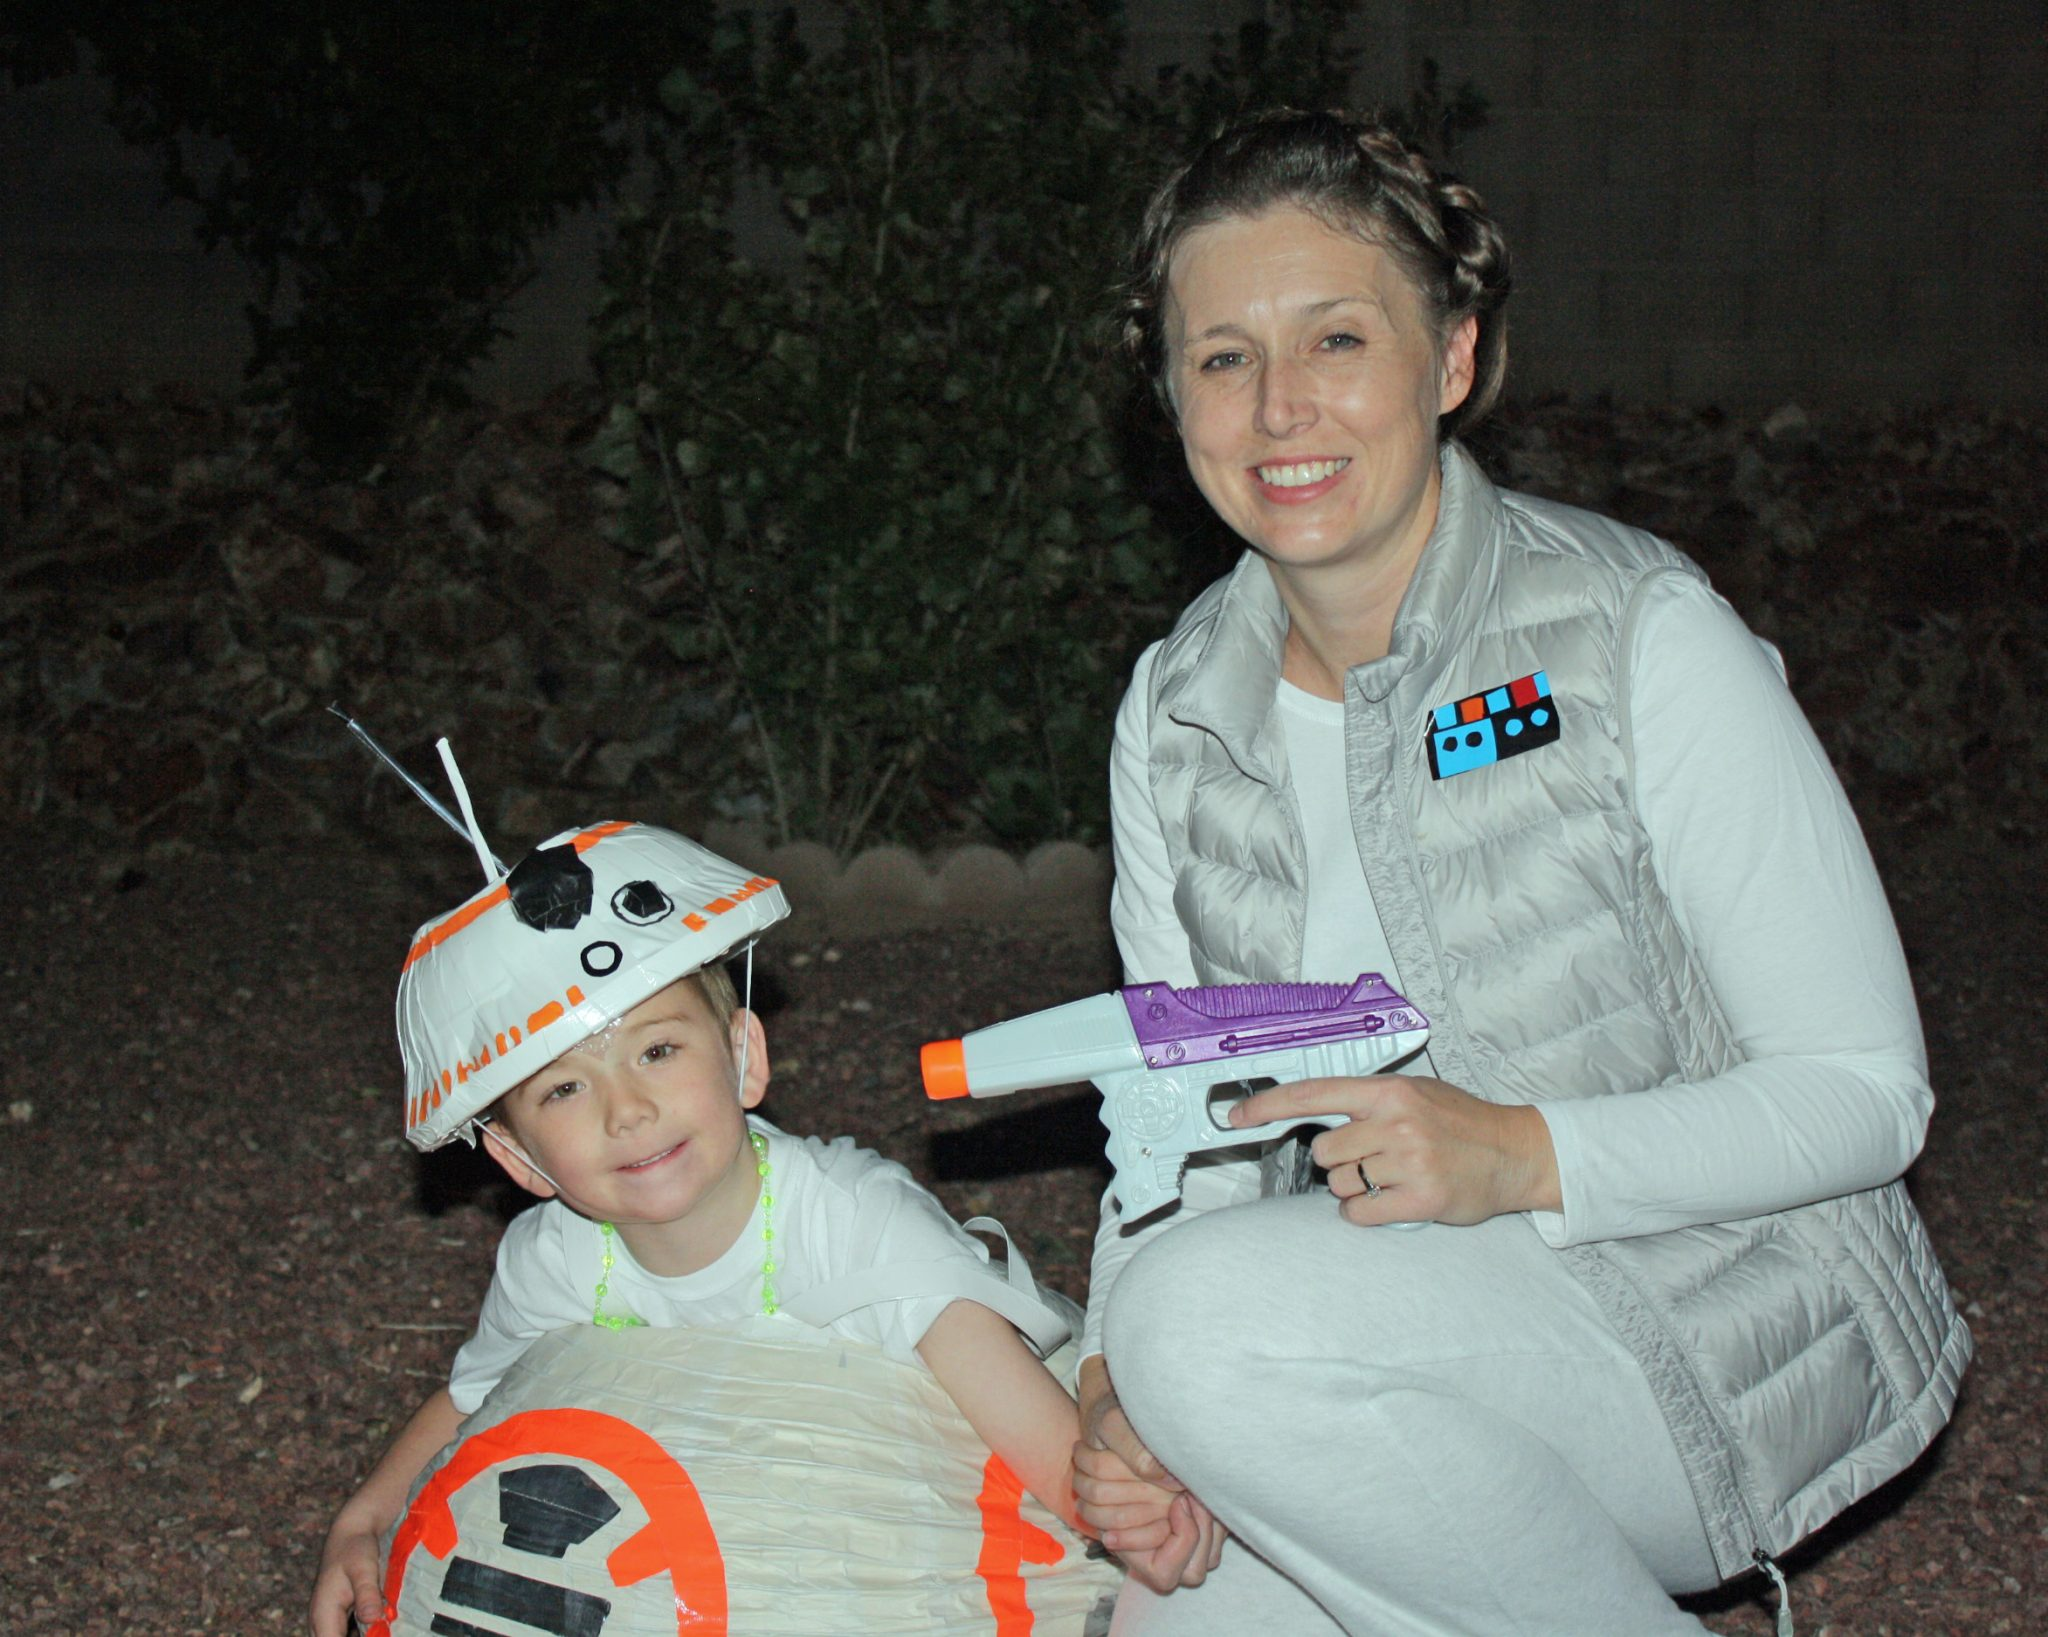 BB-8 and Leia Costumes  sc 1 st  Desert Chica & DIY Star Wars Costume Ideas | Desert Chica